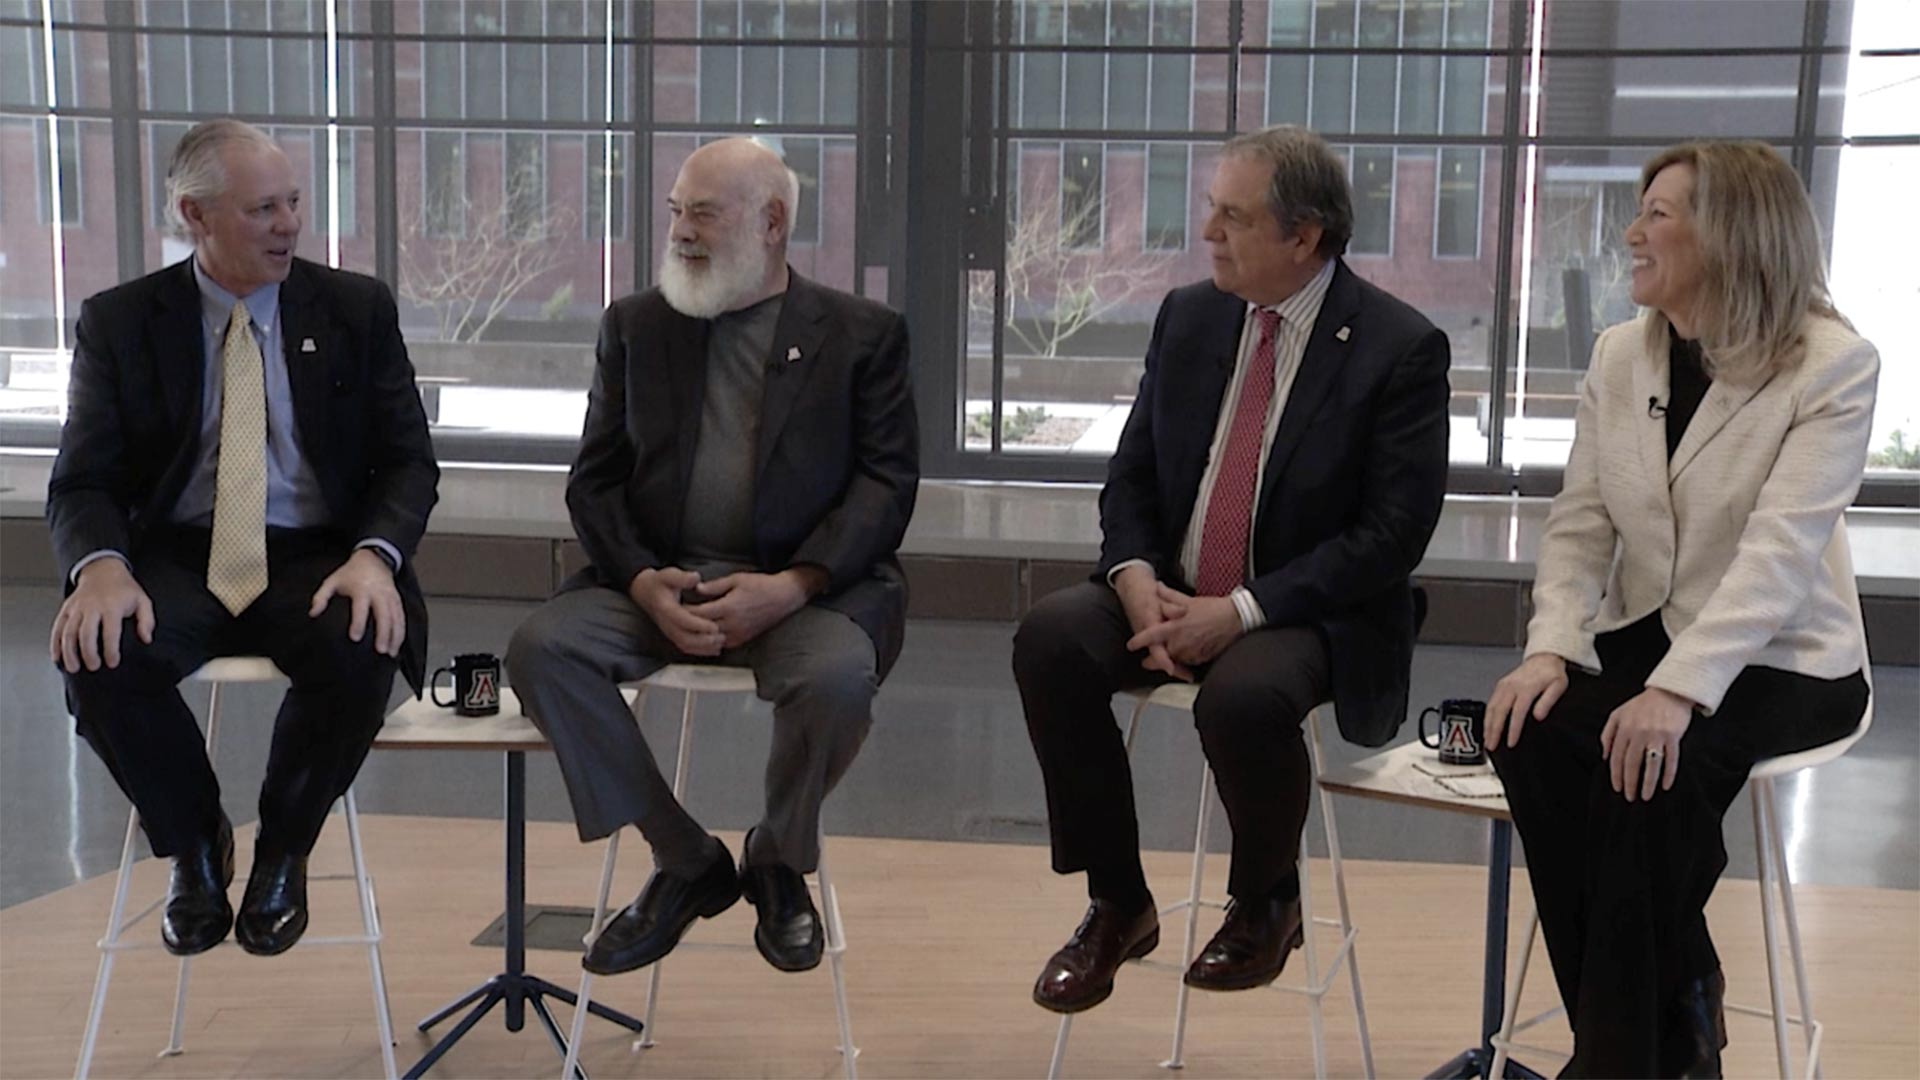 Dr. Andrew Weil speaks at his press briefing at his University of Arizona Health Science Innovation Building on March 12, 2019.